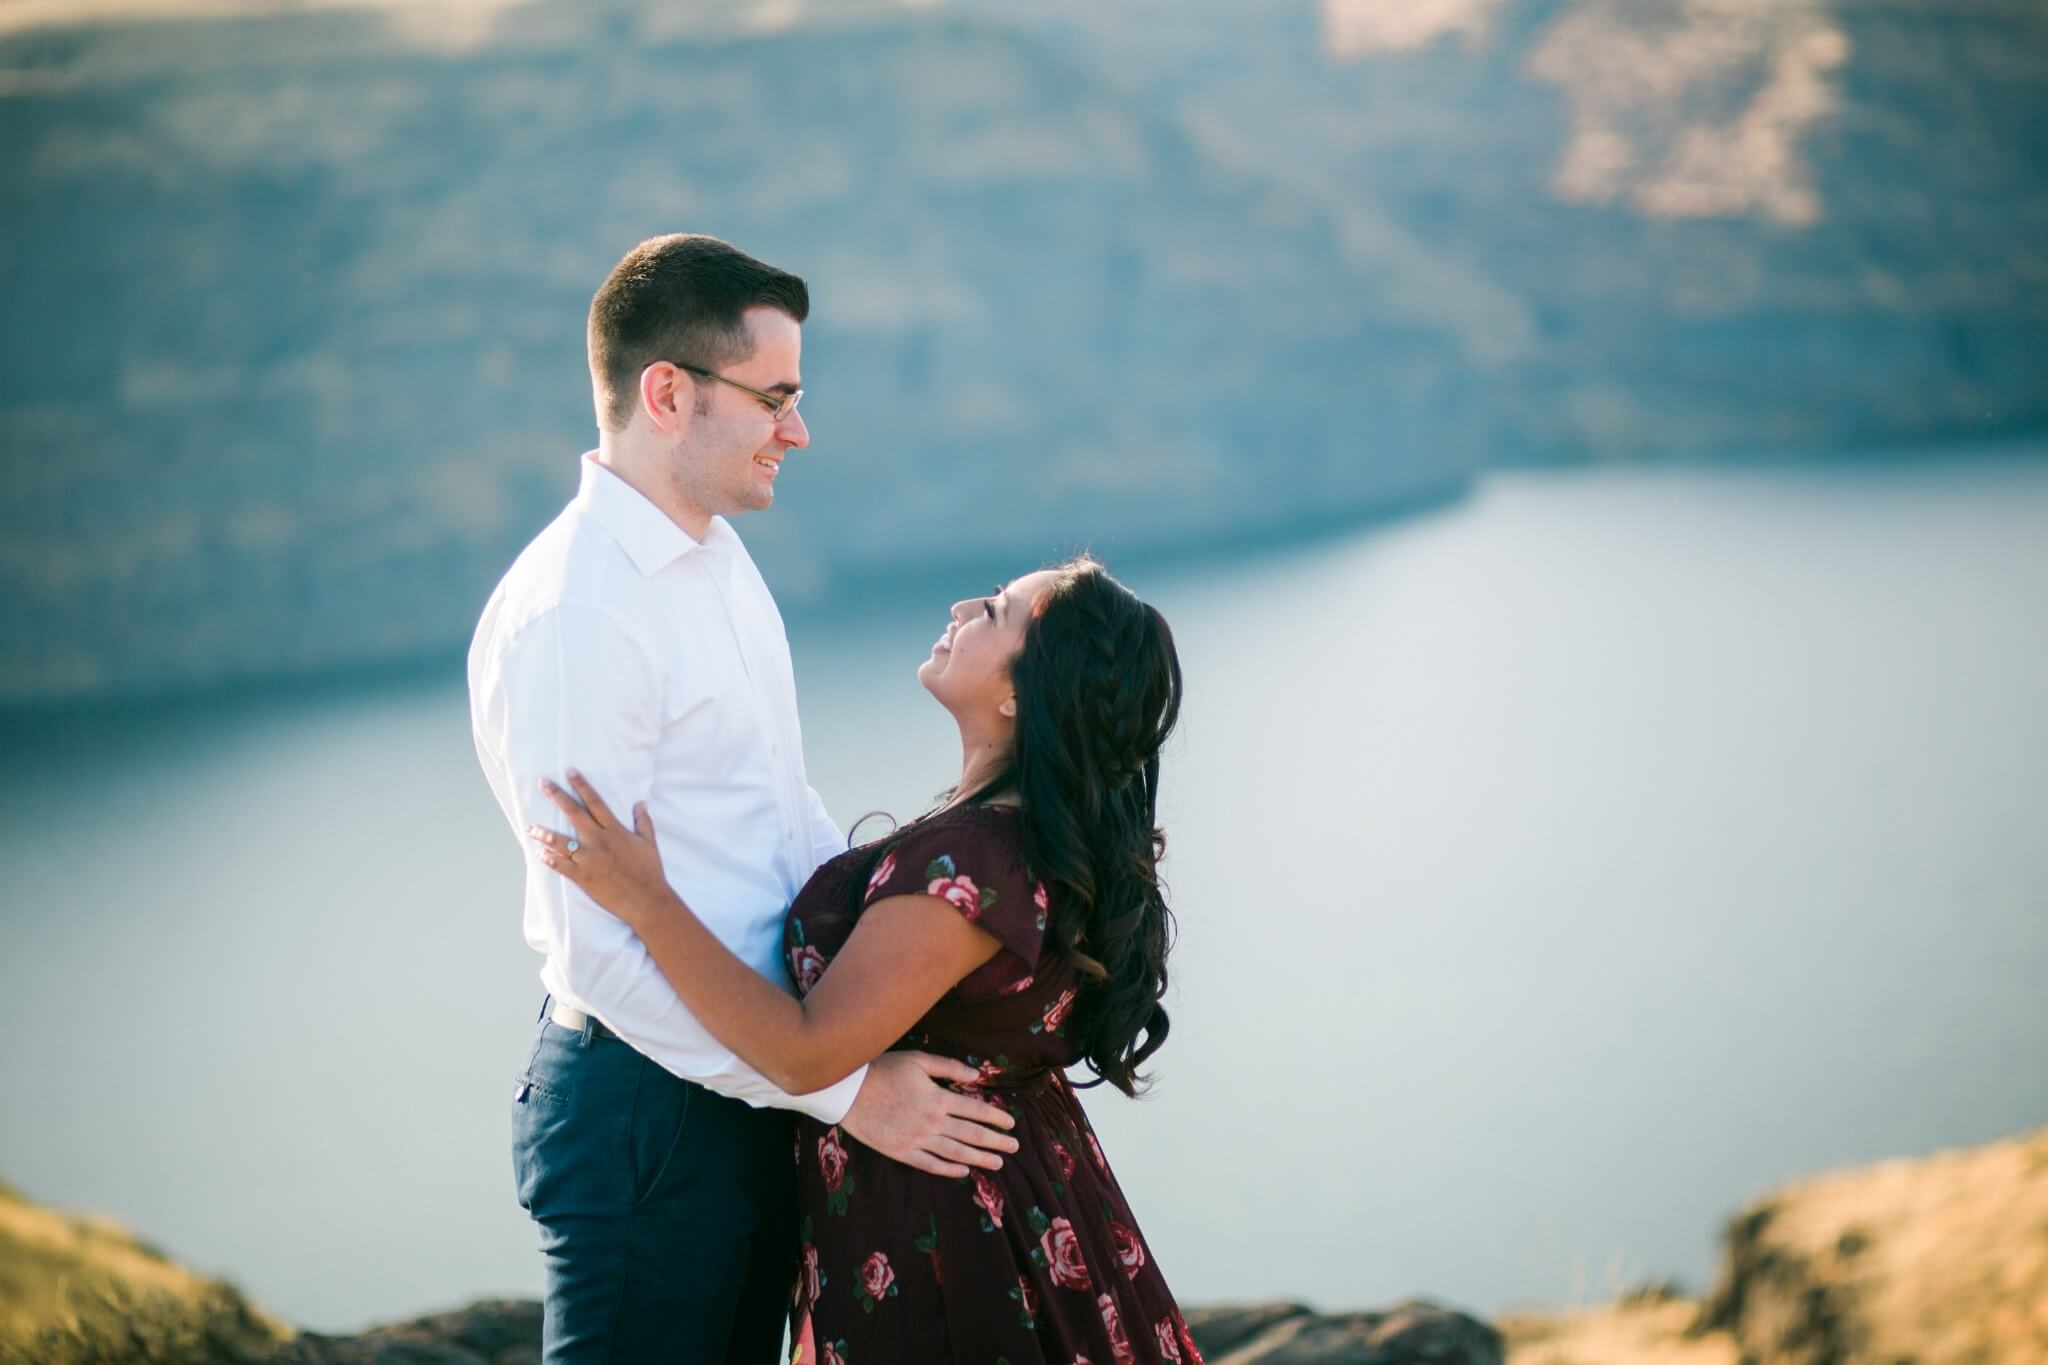 Lesly & Michael Vantage Engagement by Bill Weisgerber Spokane Photographer (9 of 71).jpg